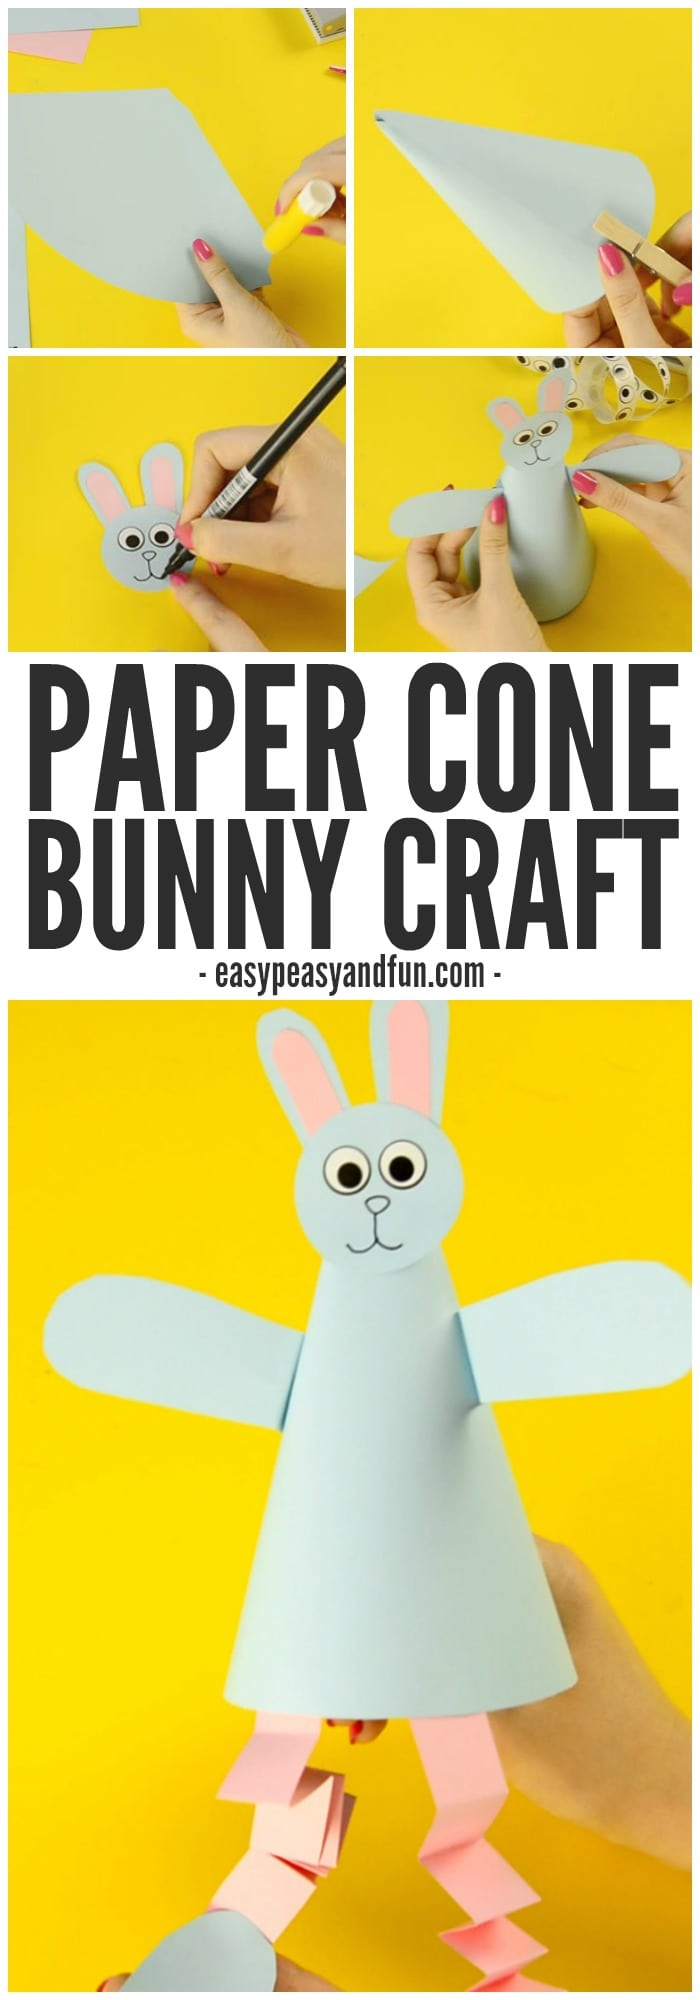 Adorable Paper Cone Bunny Craft for Kids to Make